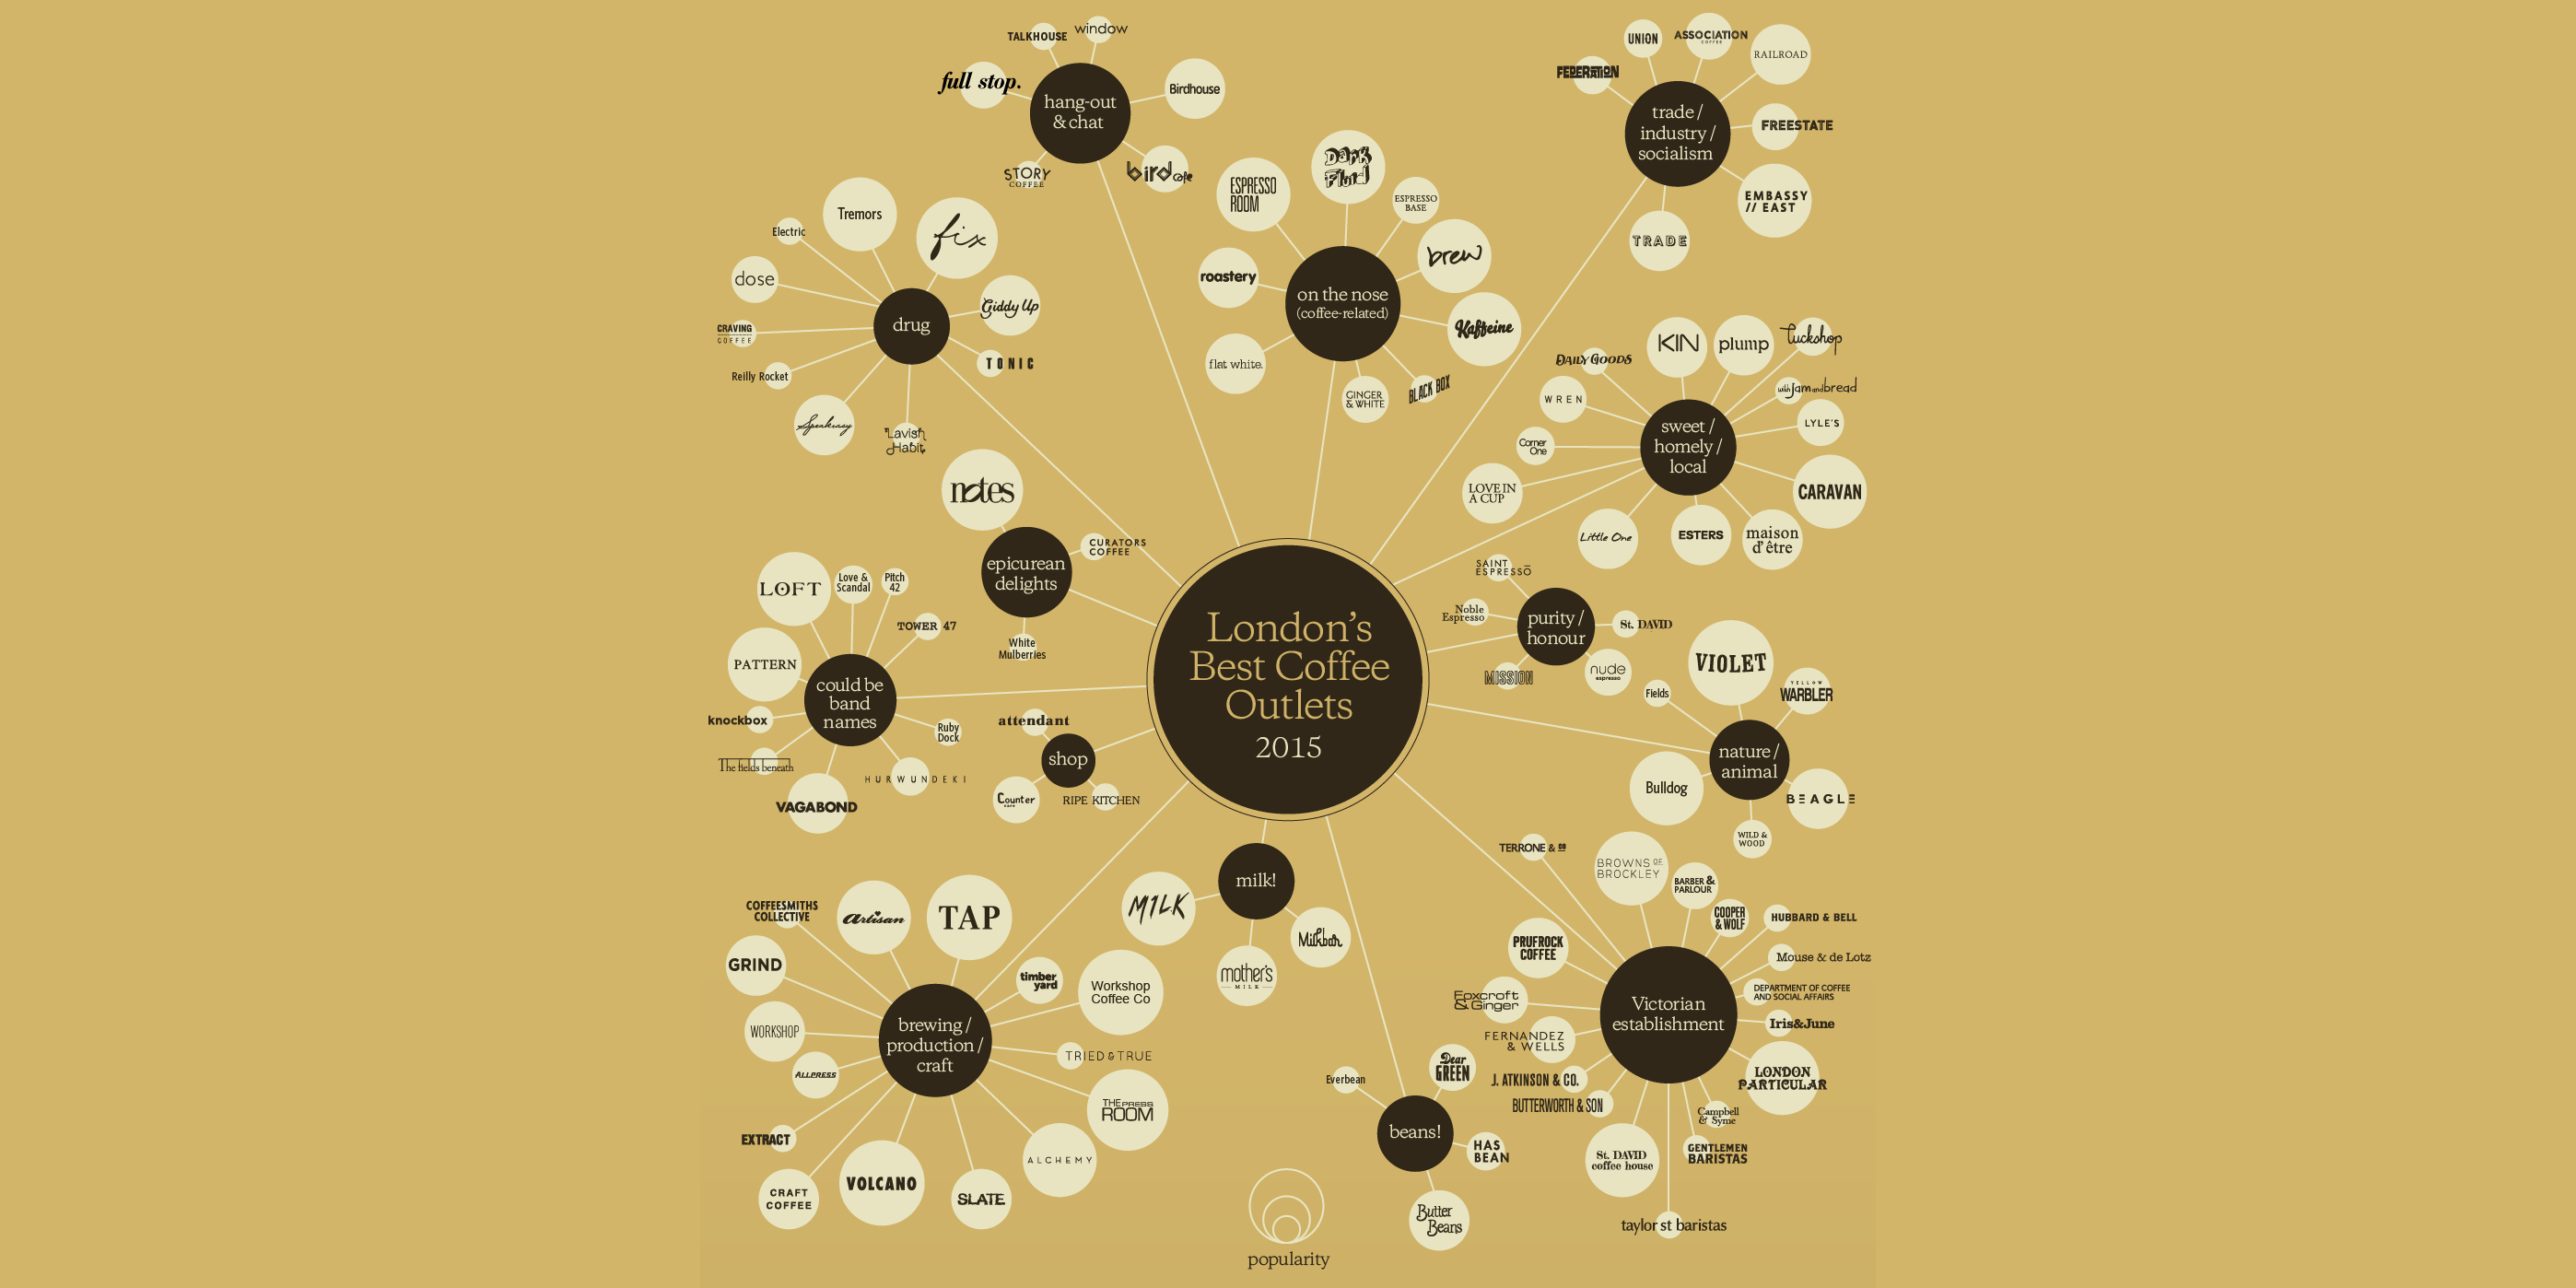 A Taxonomy Of Hip Coffee Shop Names